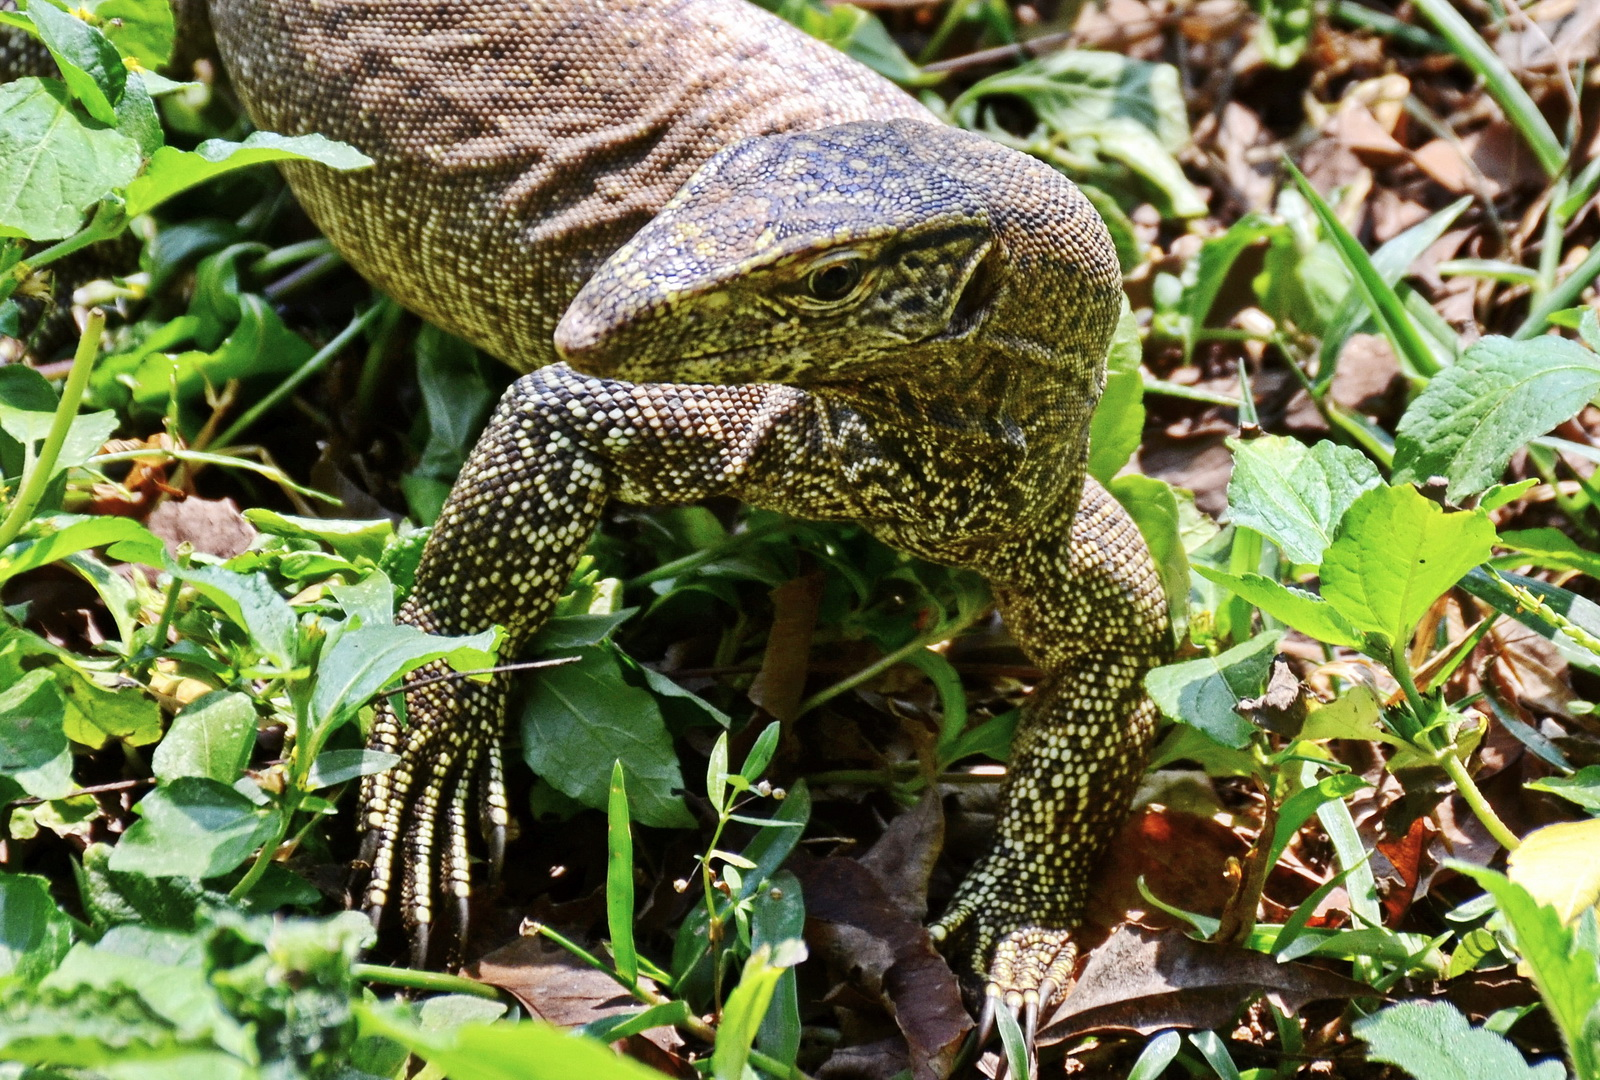 Sri Lanka. Monitor lizard in Udawalawa.